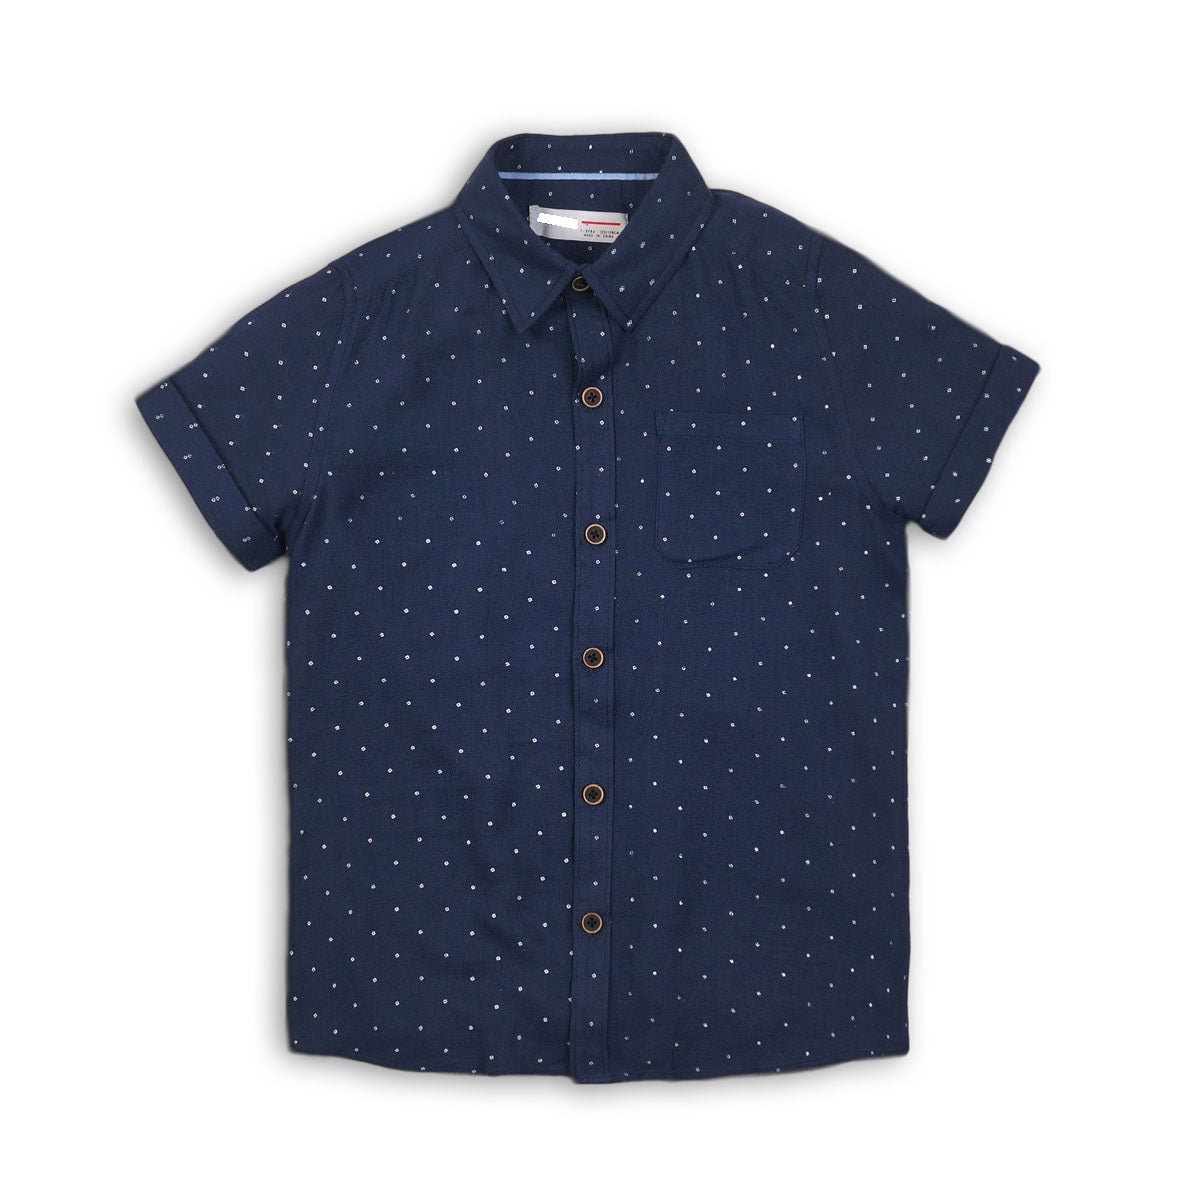 Boys All Over Print Shirt With Pocket